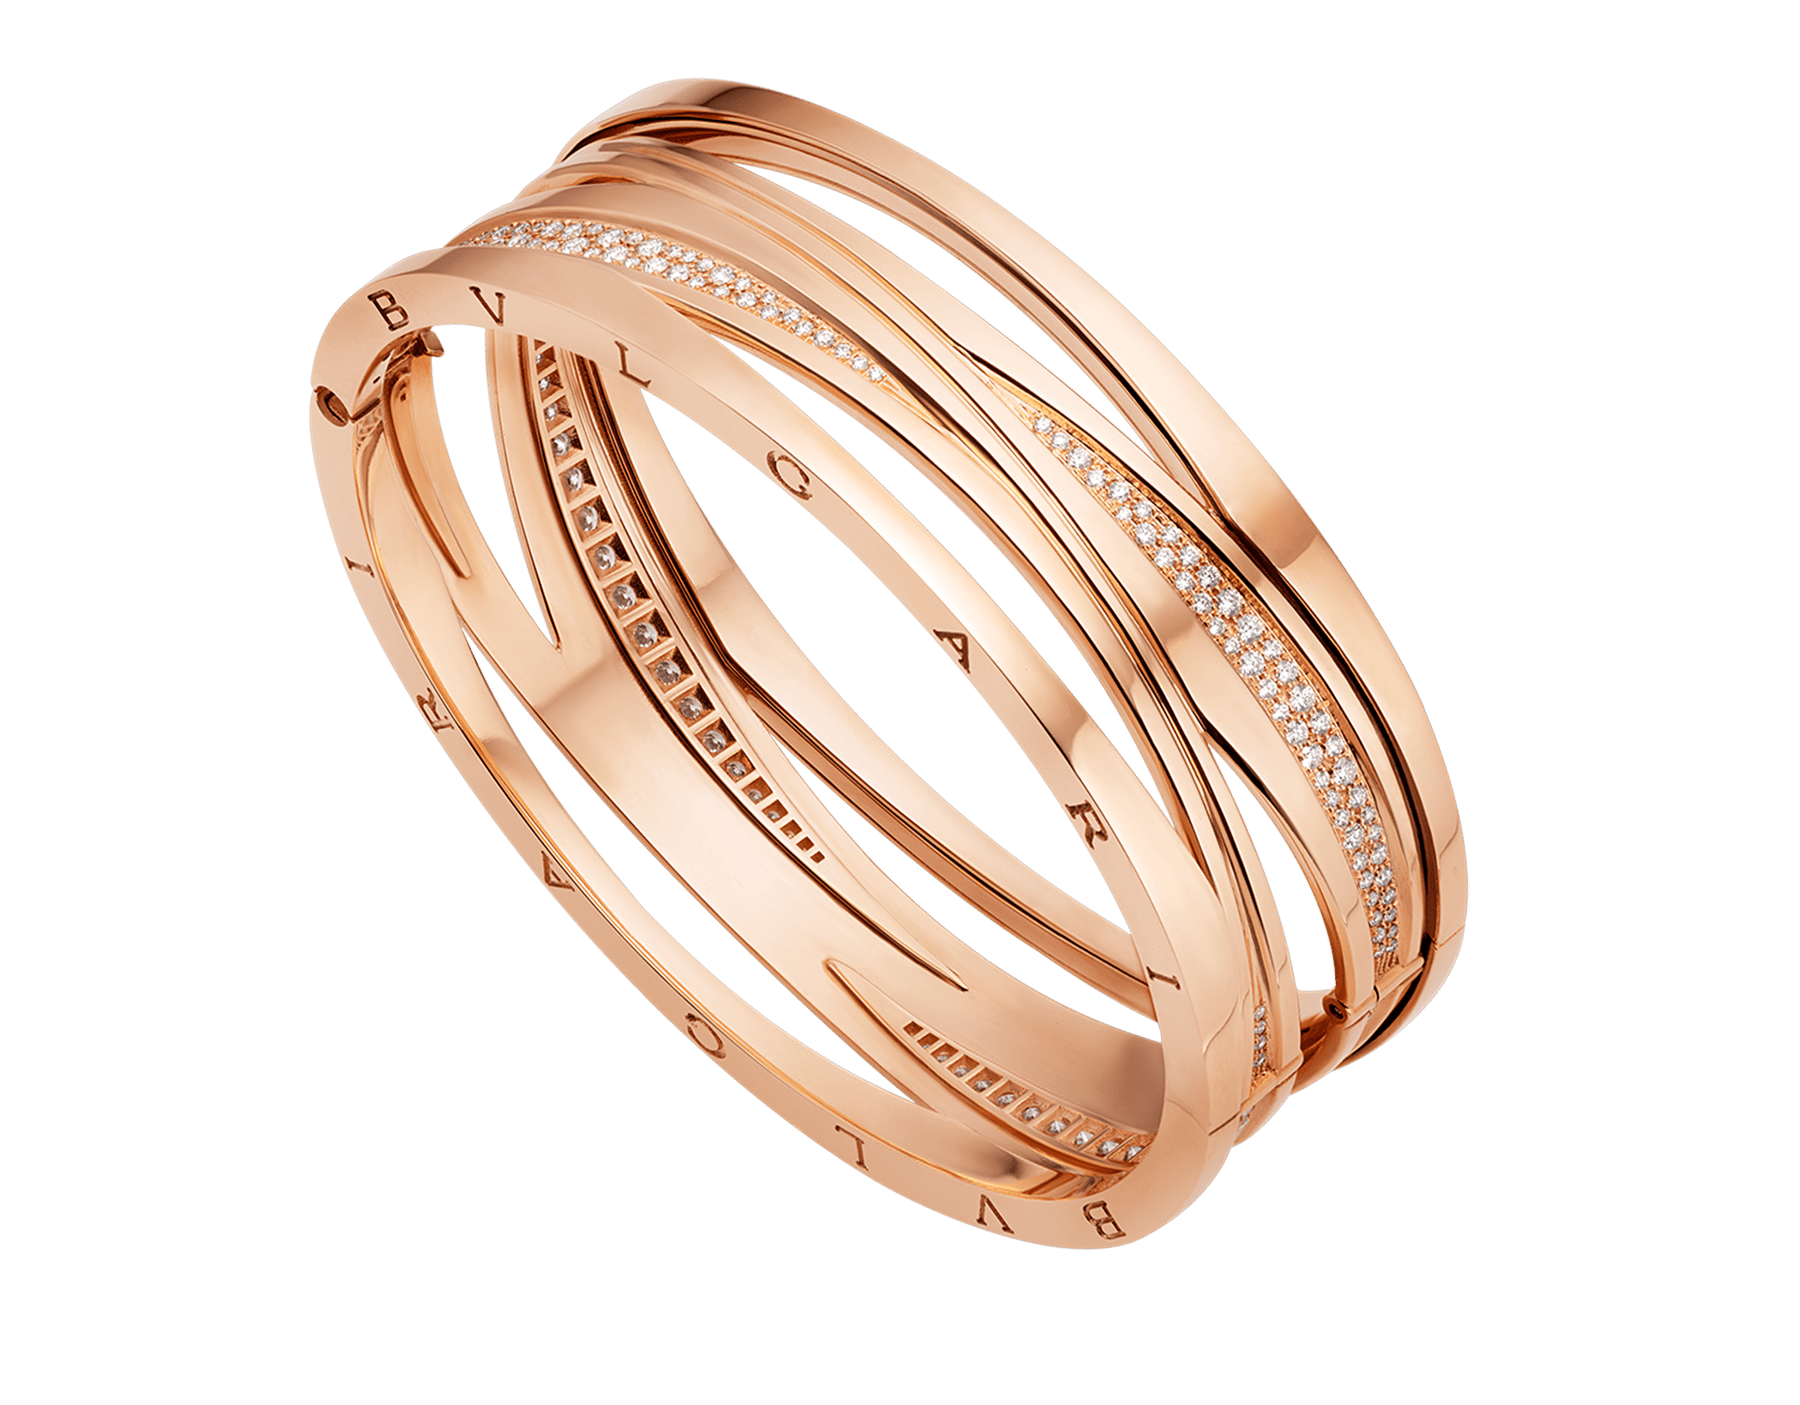 B.zero1 Design Legend bracelet in 18 kt rose gold, set with pavé diamonds on the spiral. BR858728 image 1